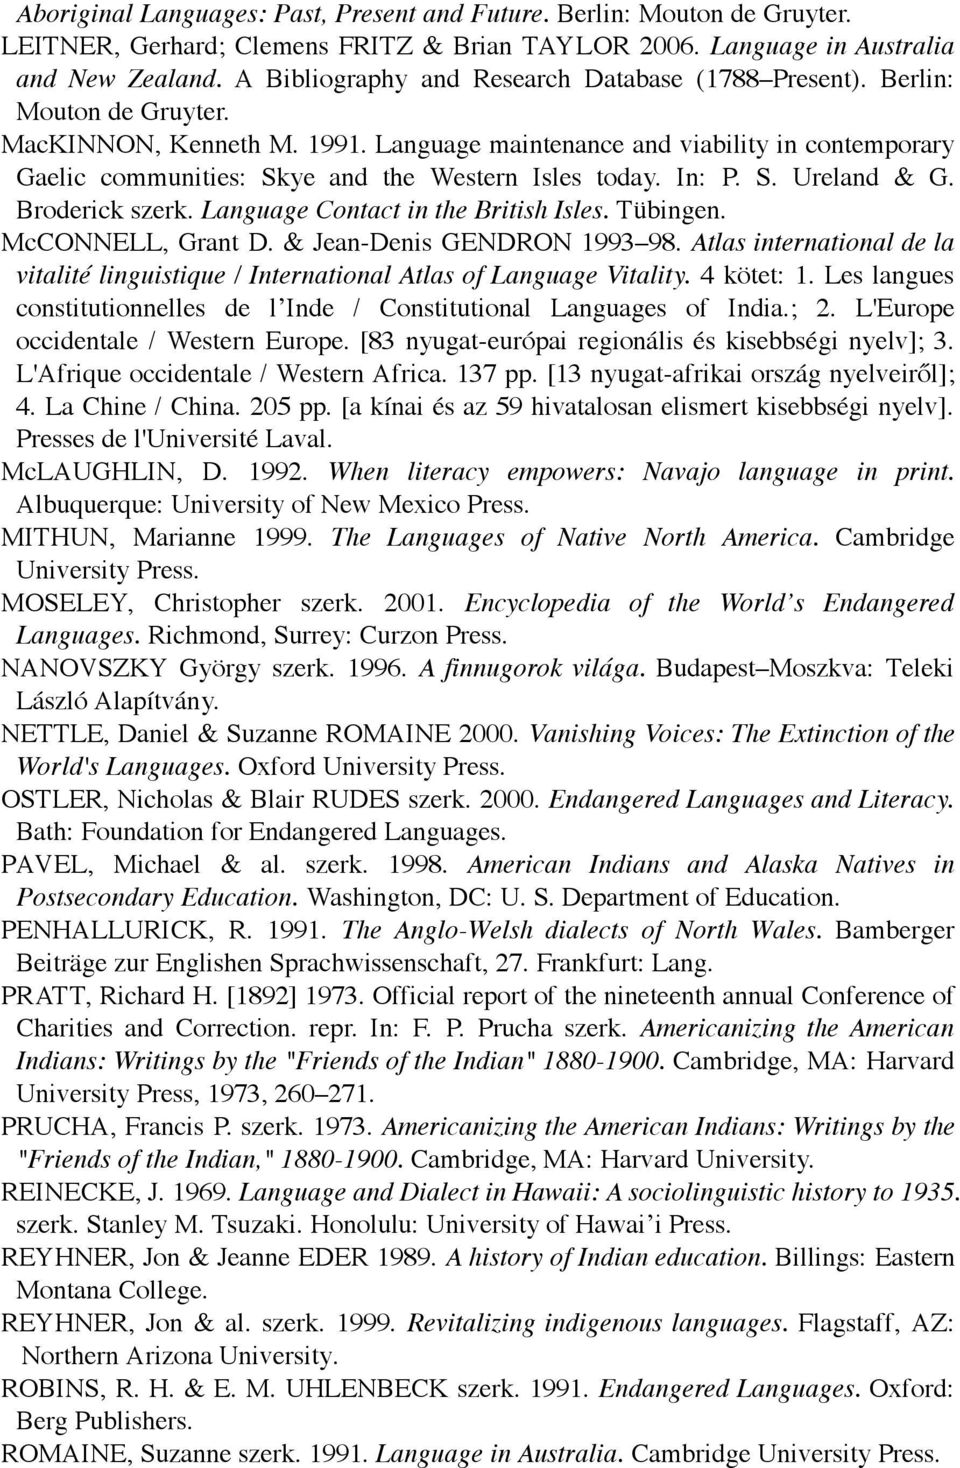 Language maintenance and viability in contemporary Gaelic communities: Skye and the Western Isles today. In: P. S. Ureland & G. Broderick szerk. Language Contact in the British Isles. Tübingen.